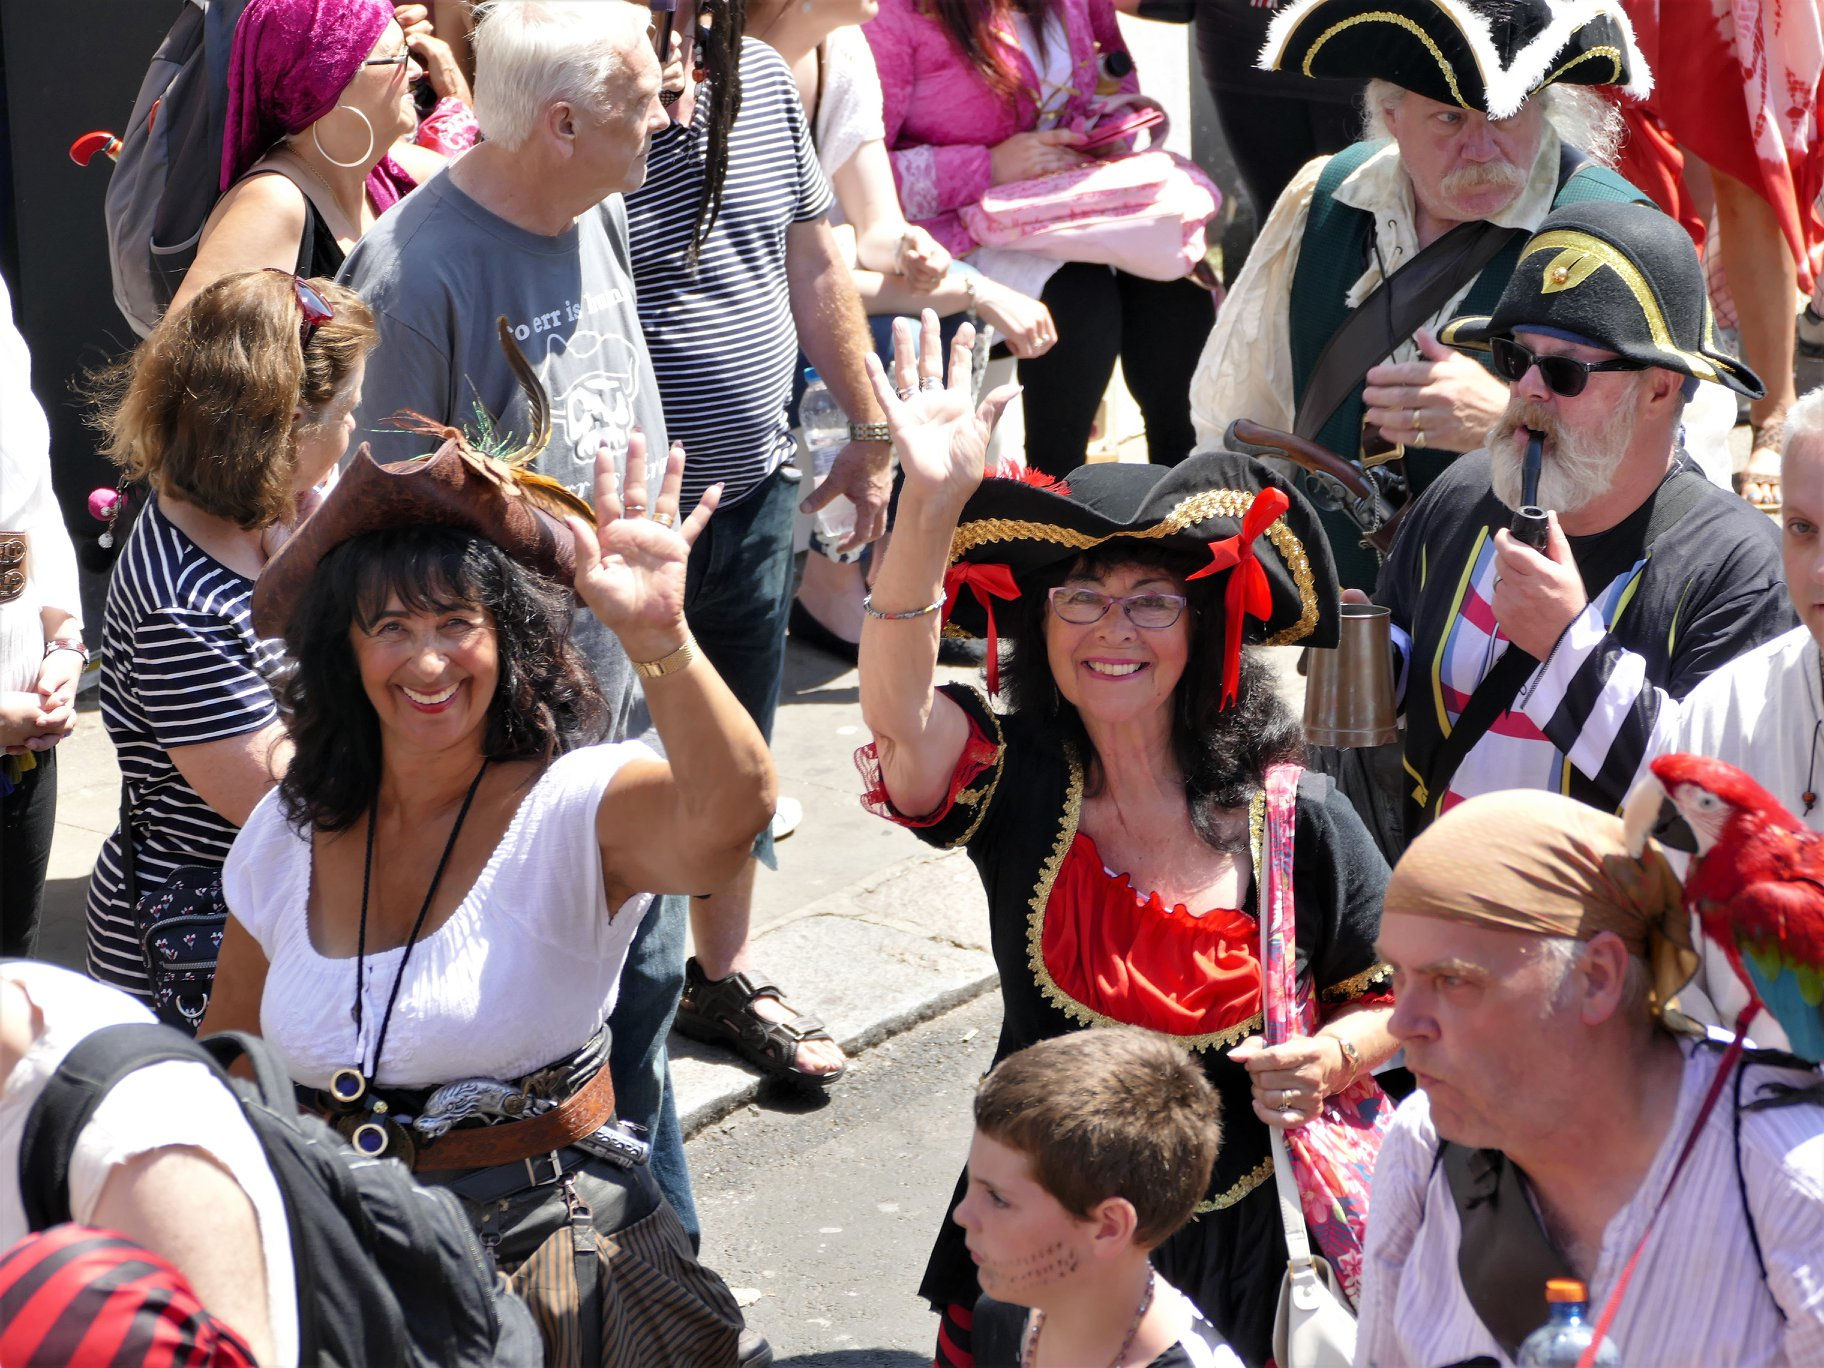 Ahoy, Me hearties. Chanties were sung, carousing was done t'was Pirate Day in ol' 'astings town